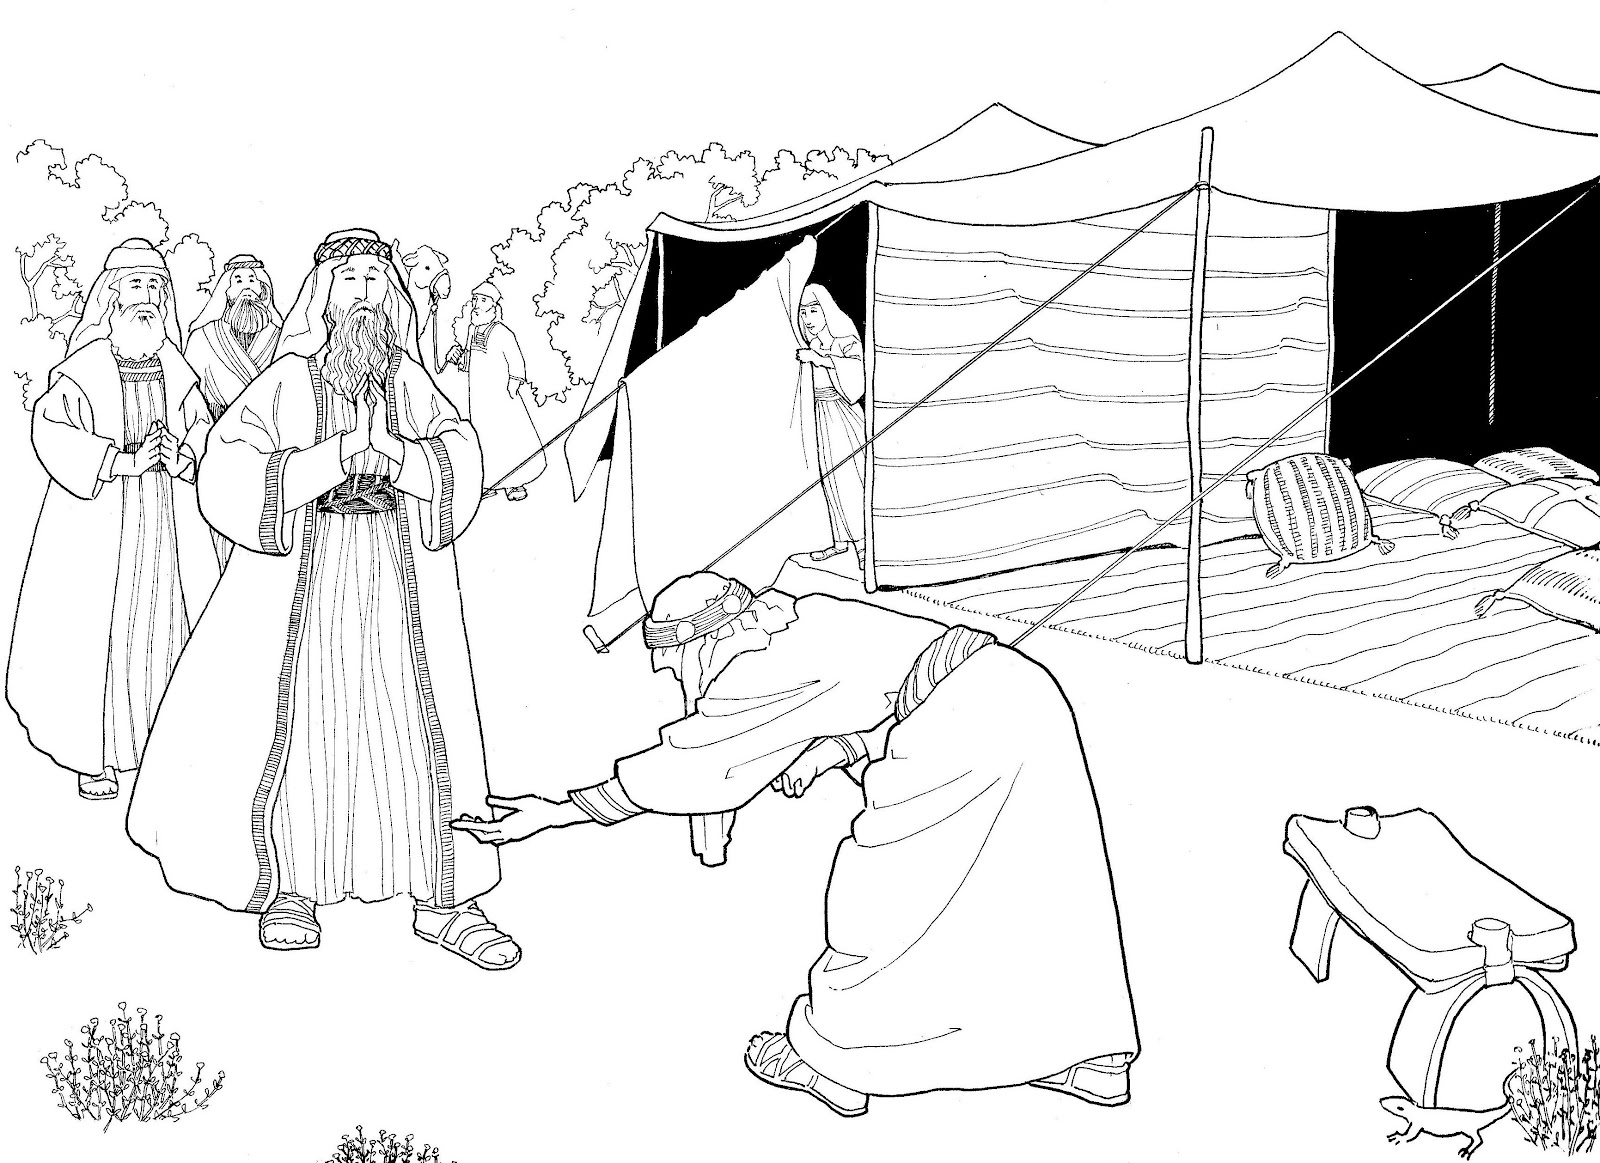 abrahams tent craft  read the story of abraham and the 3 promises of god in gen  12 1